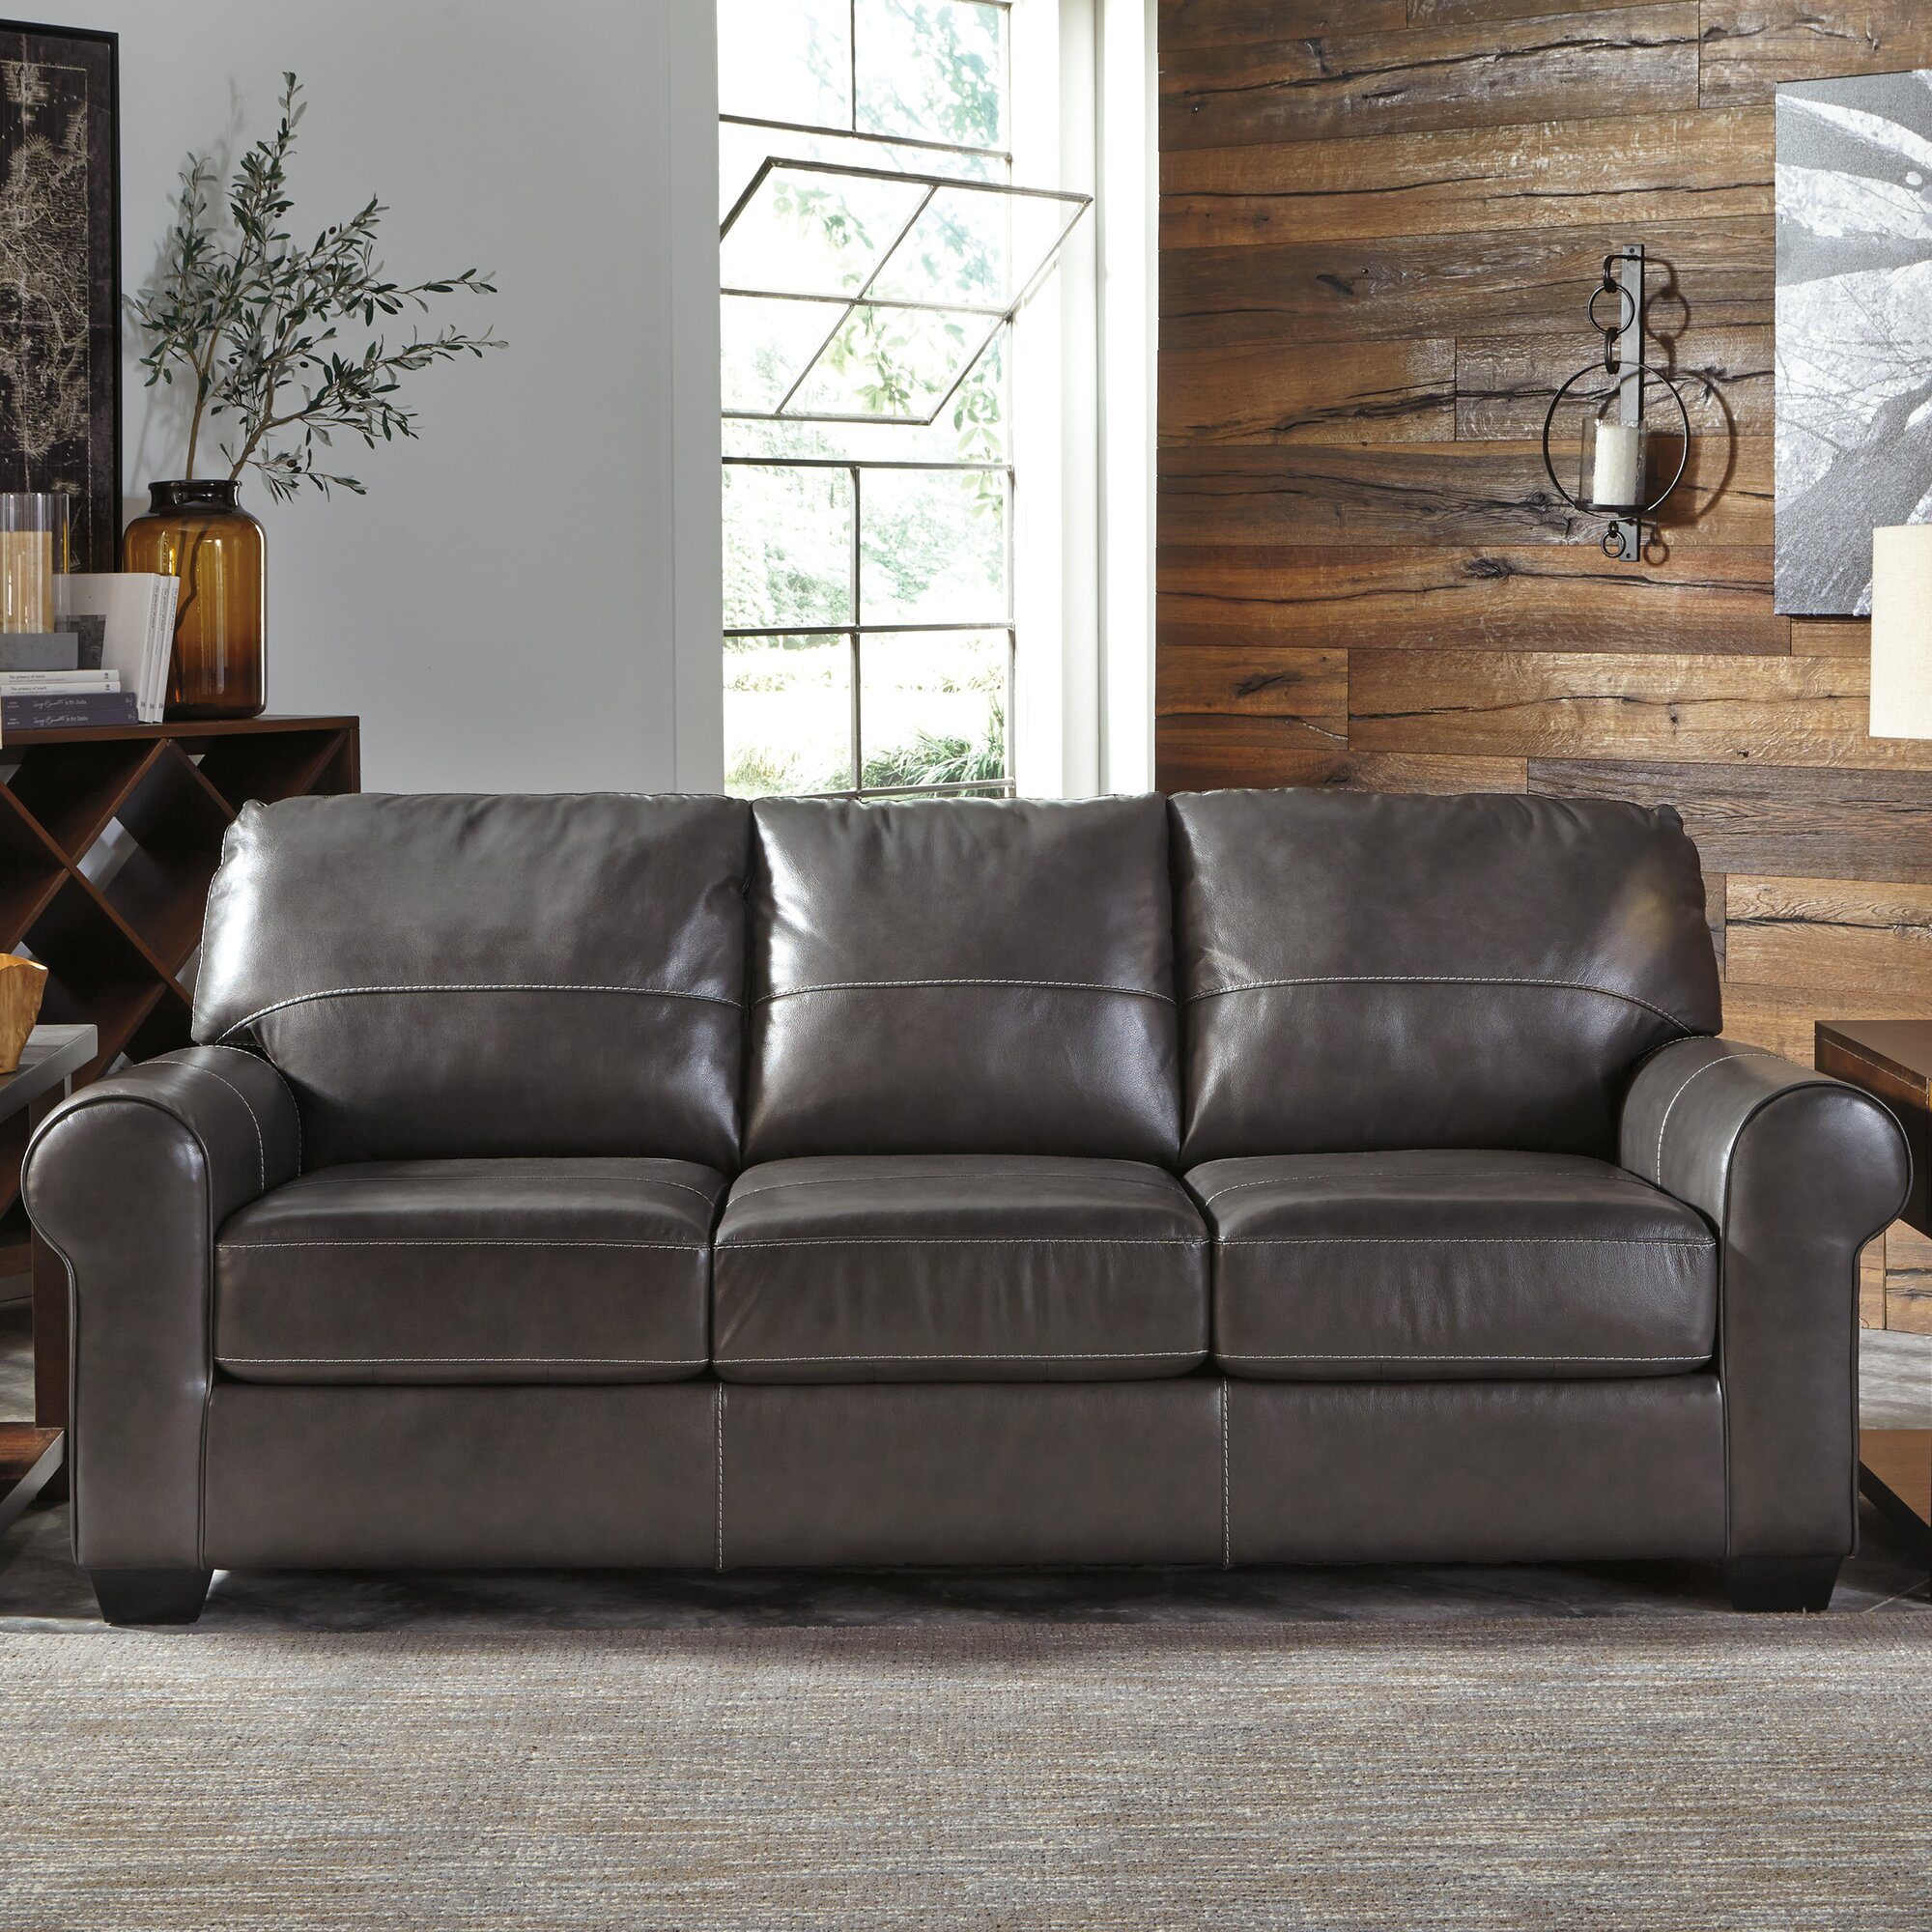 Darby Home Co Bacall Sofa & Reviews